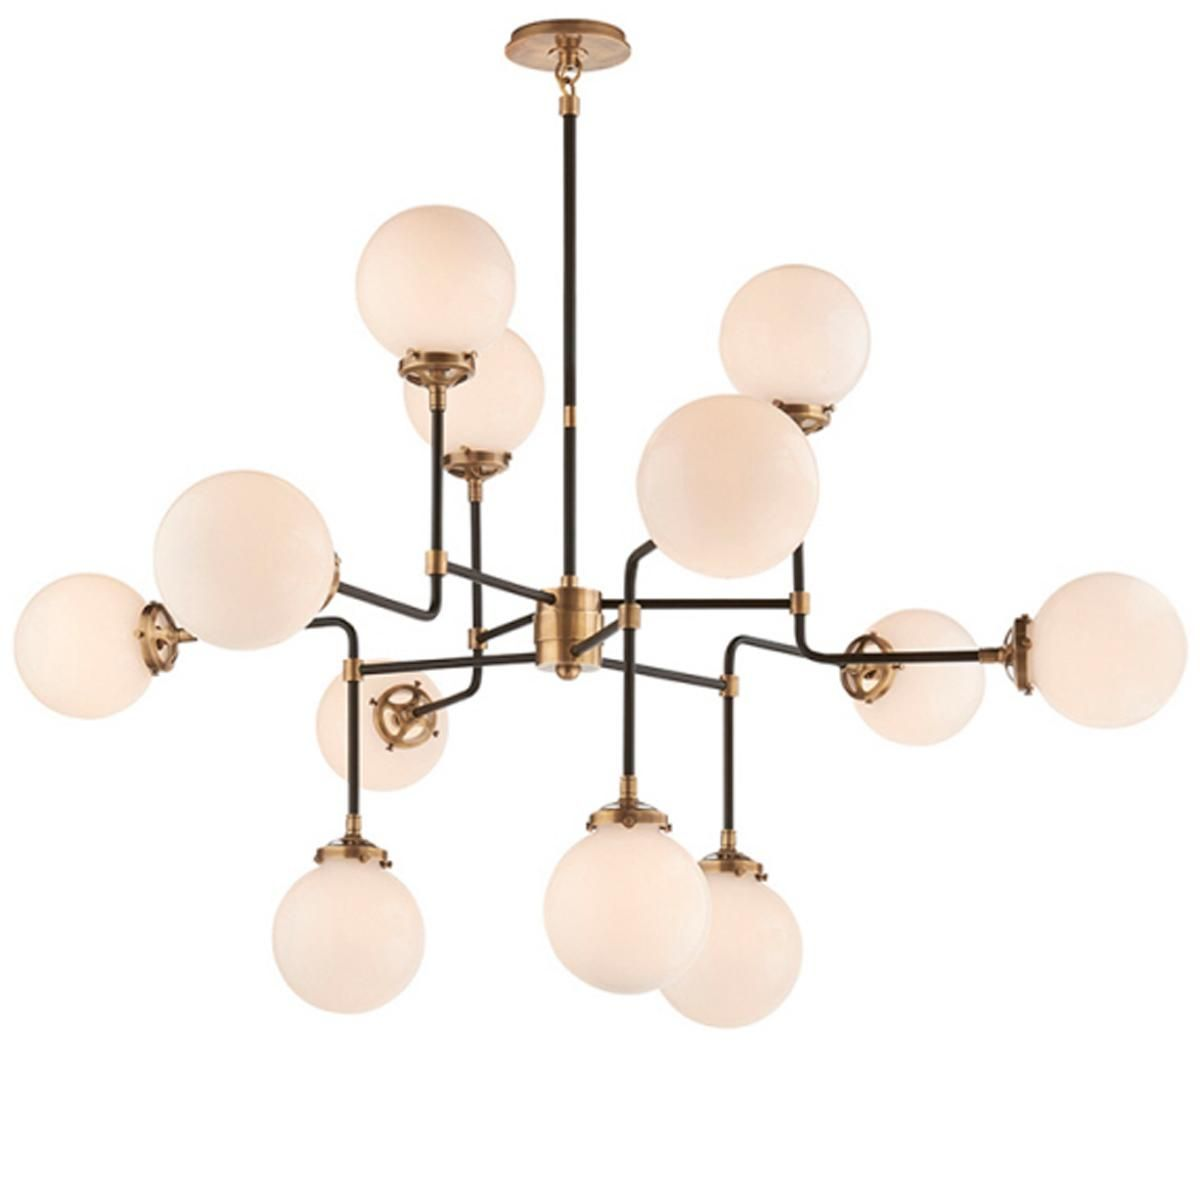 Pendant lamp Mid Century BISTRO GLOBE CLEAR GLASS CHANDELIER